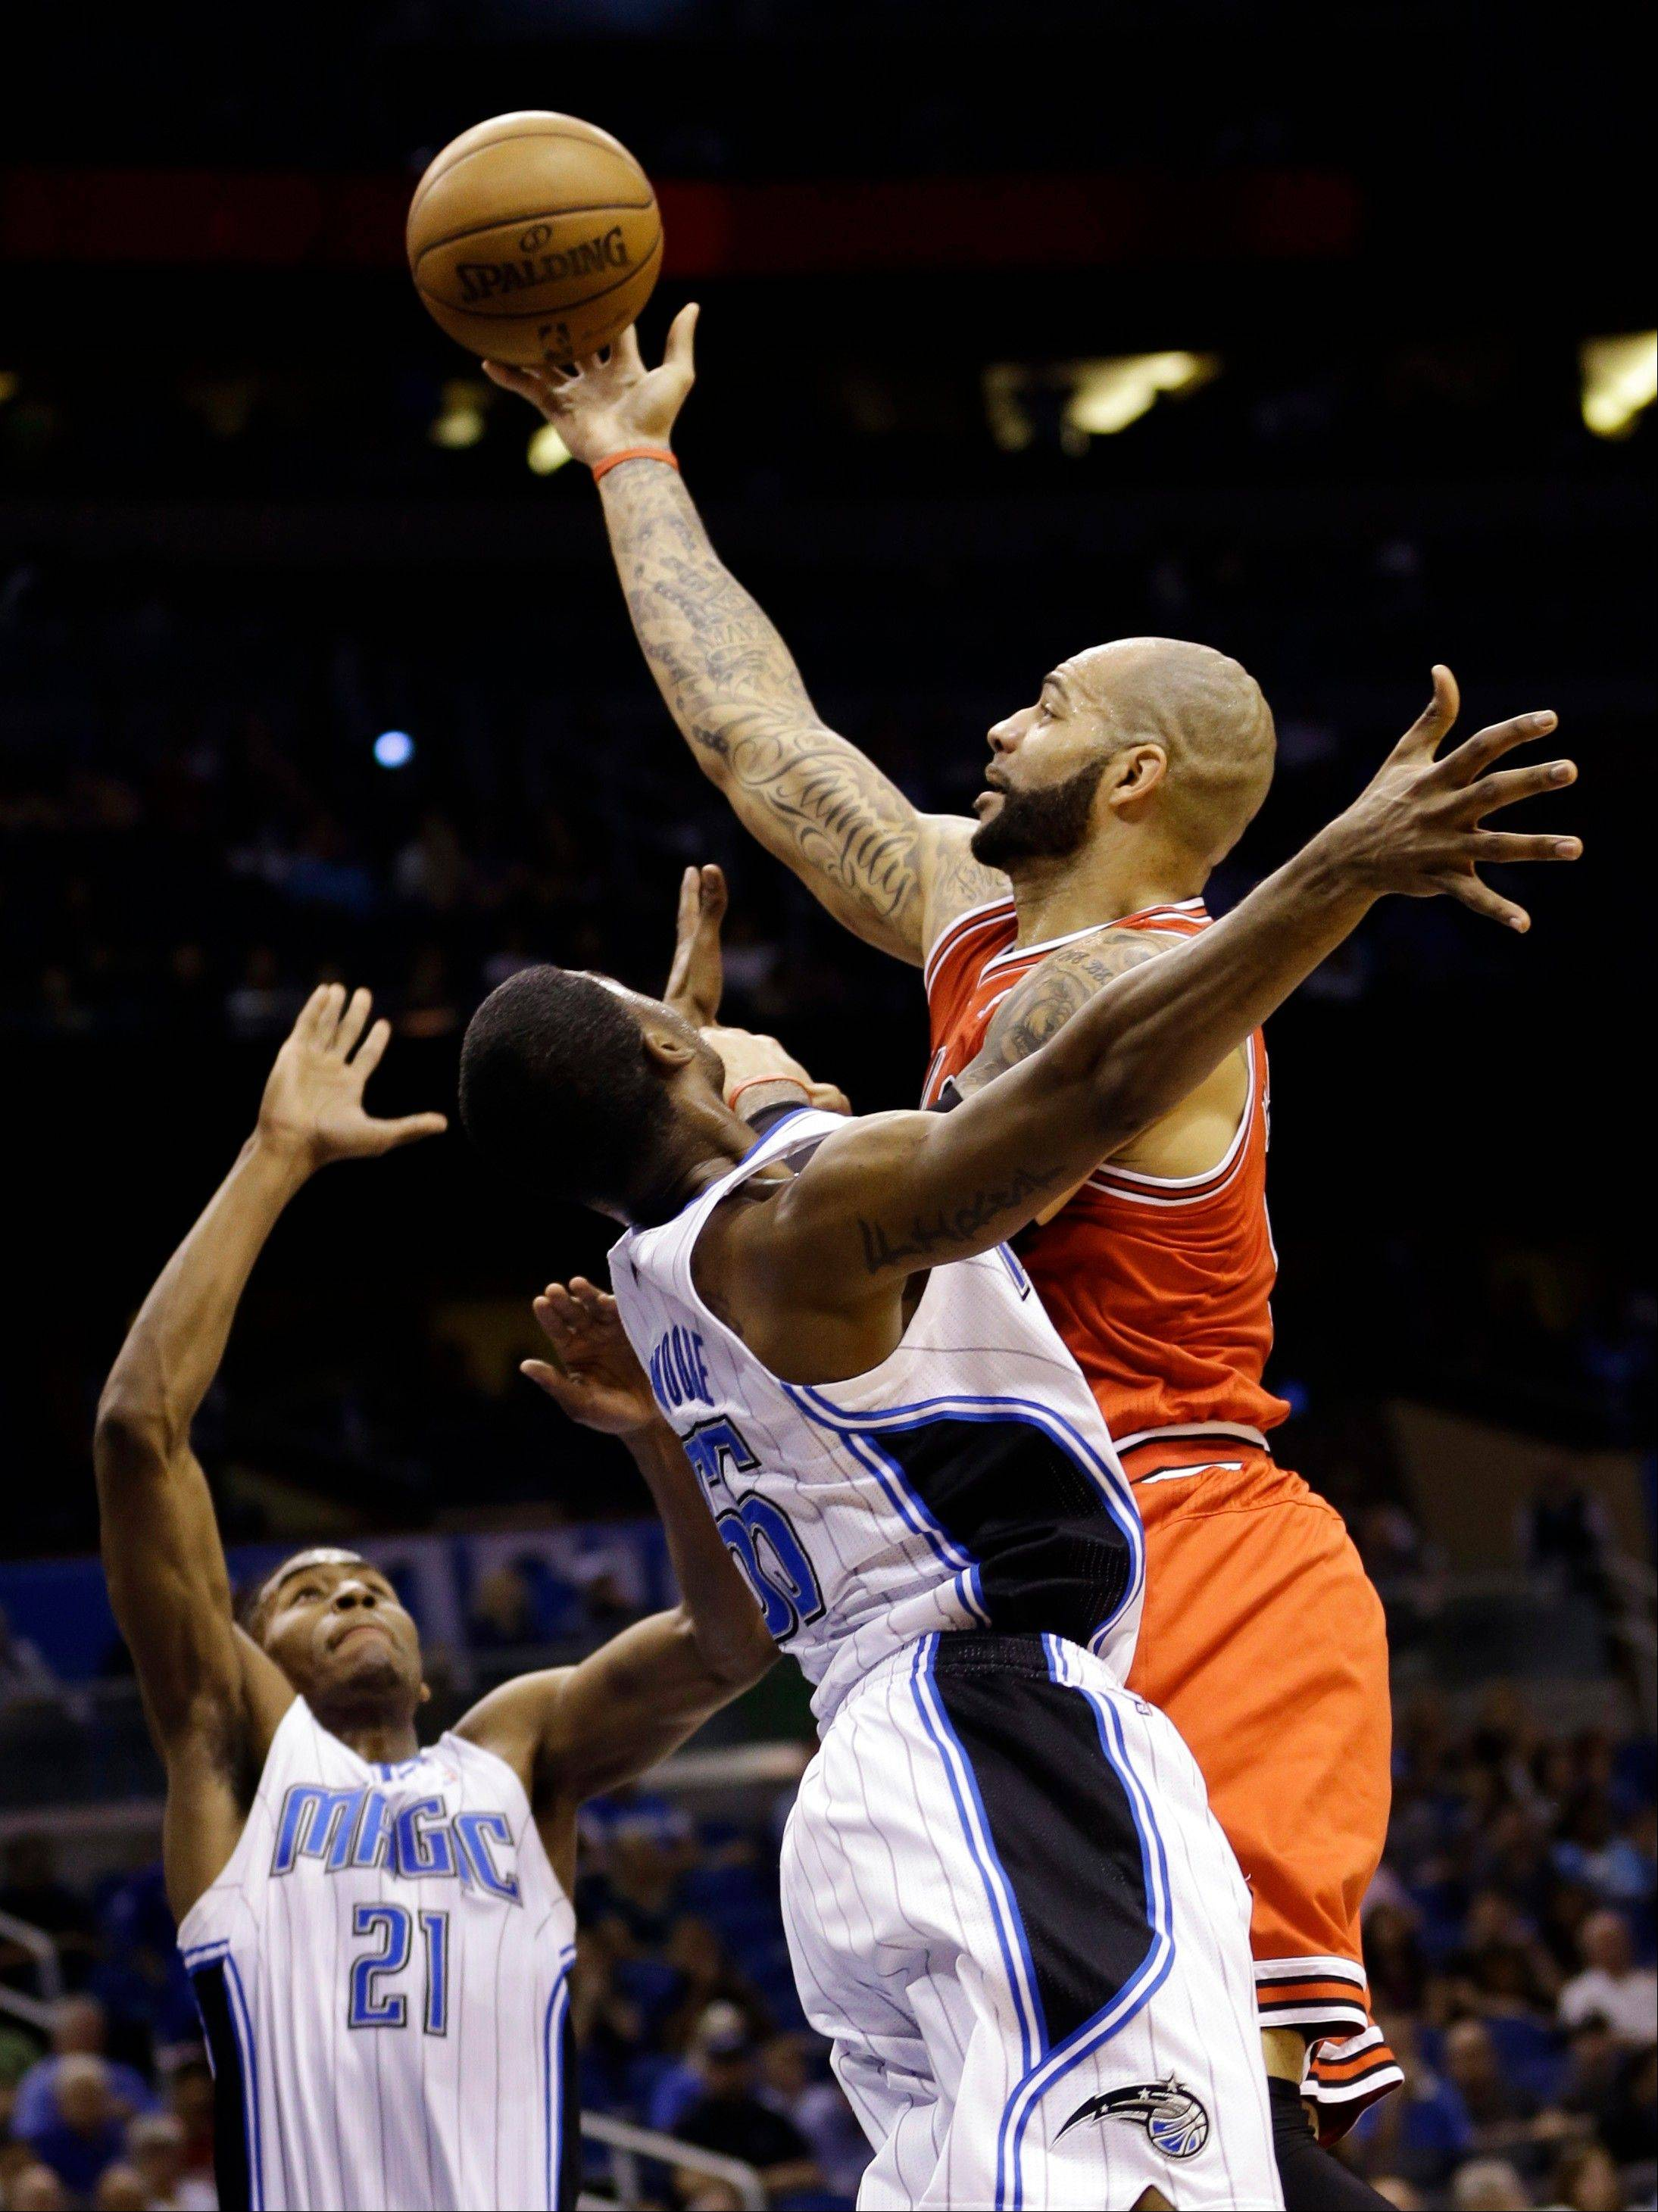 The Bulls' Carlos Boozer, right, shoots over Orlando Magic's Maurice Harkless (21) and E'Twaun Moore during the first half of the game Monday in Orlando.